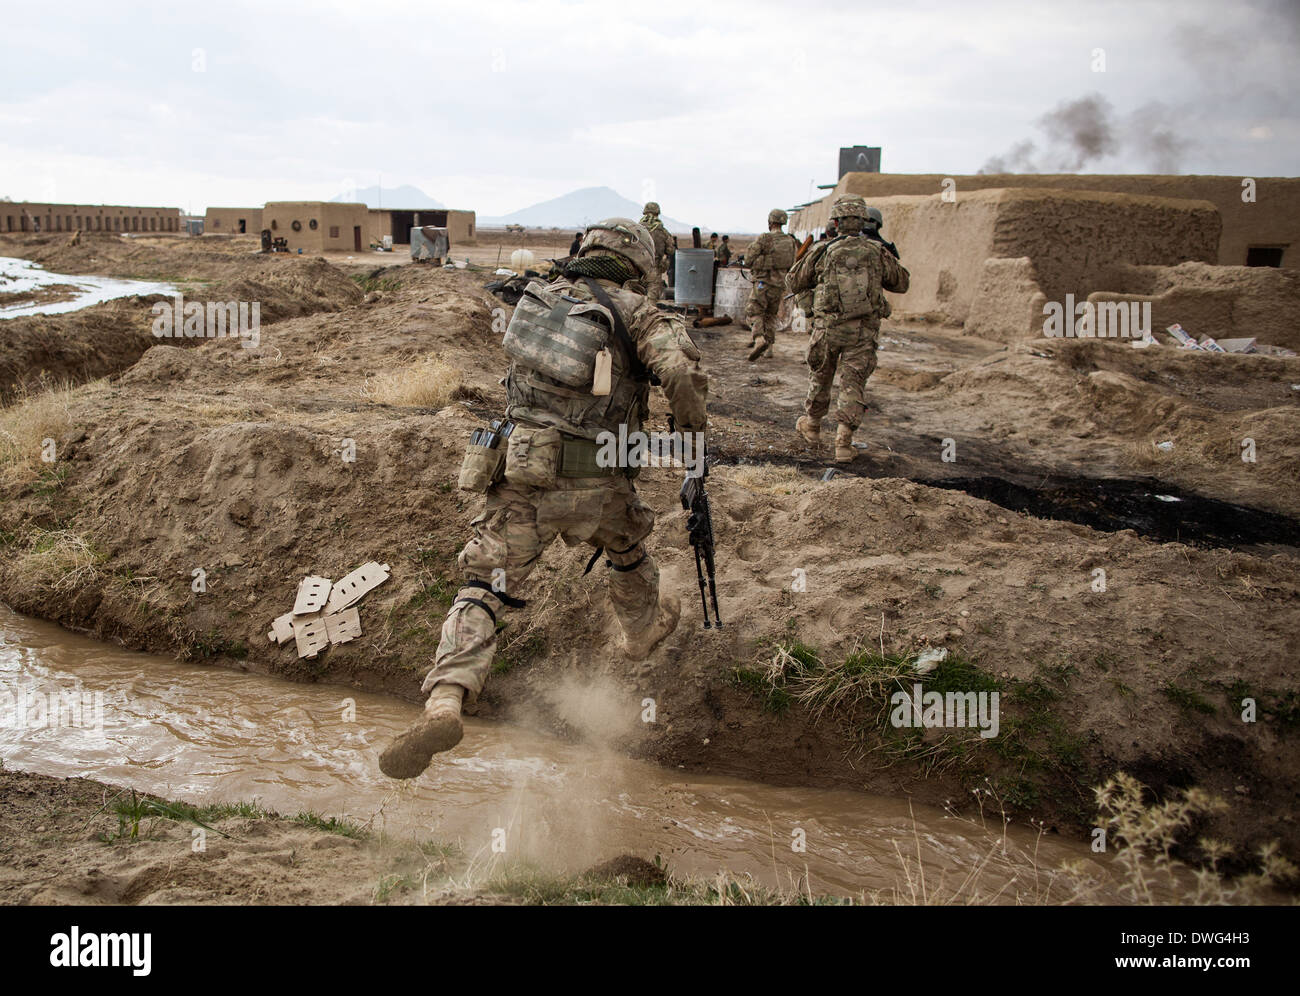 A US soldier during a reconnaissance patrol in a village during ...